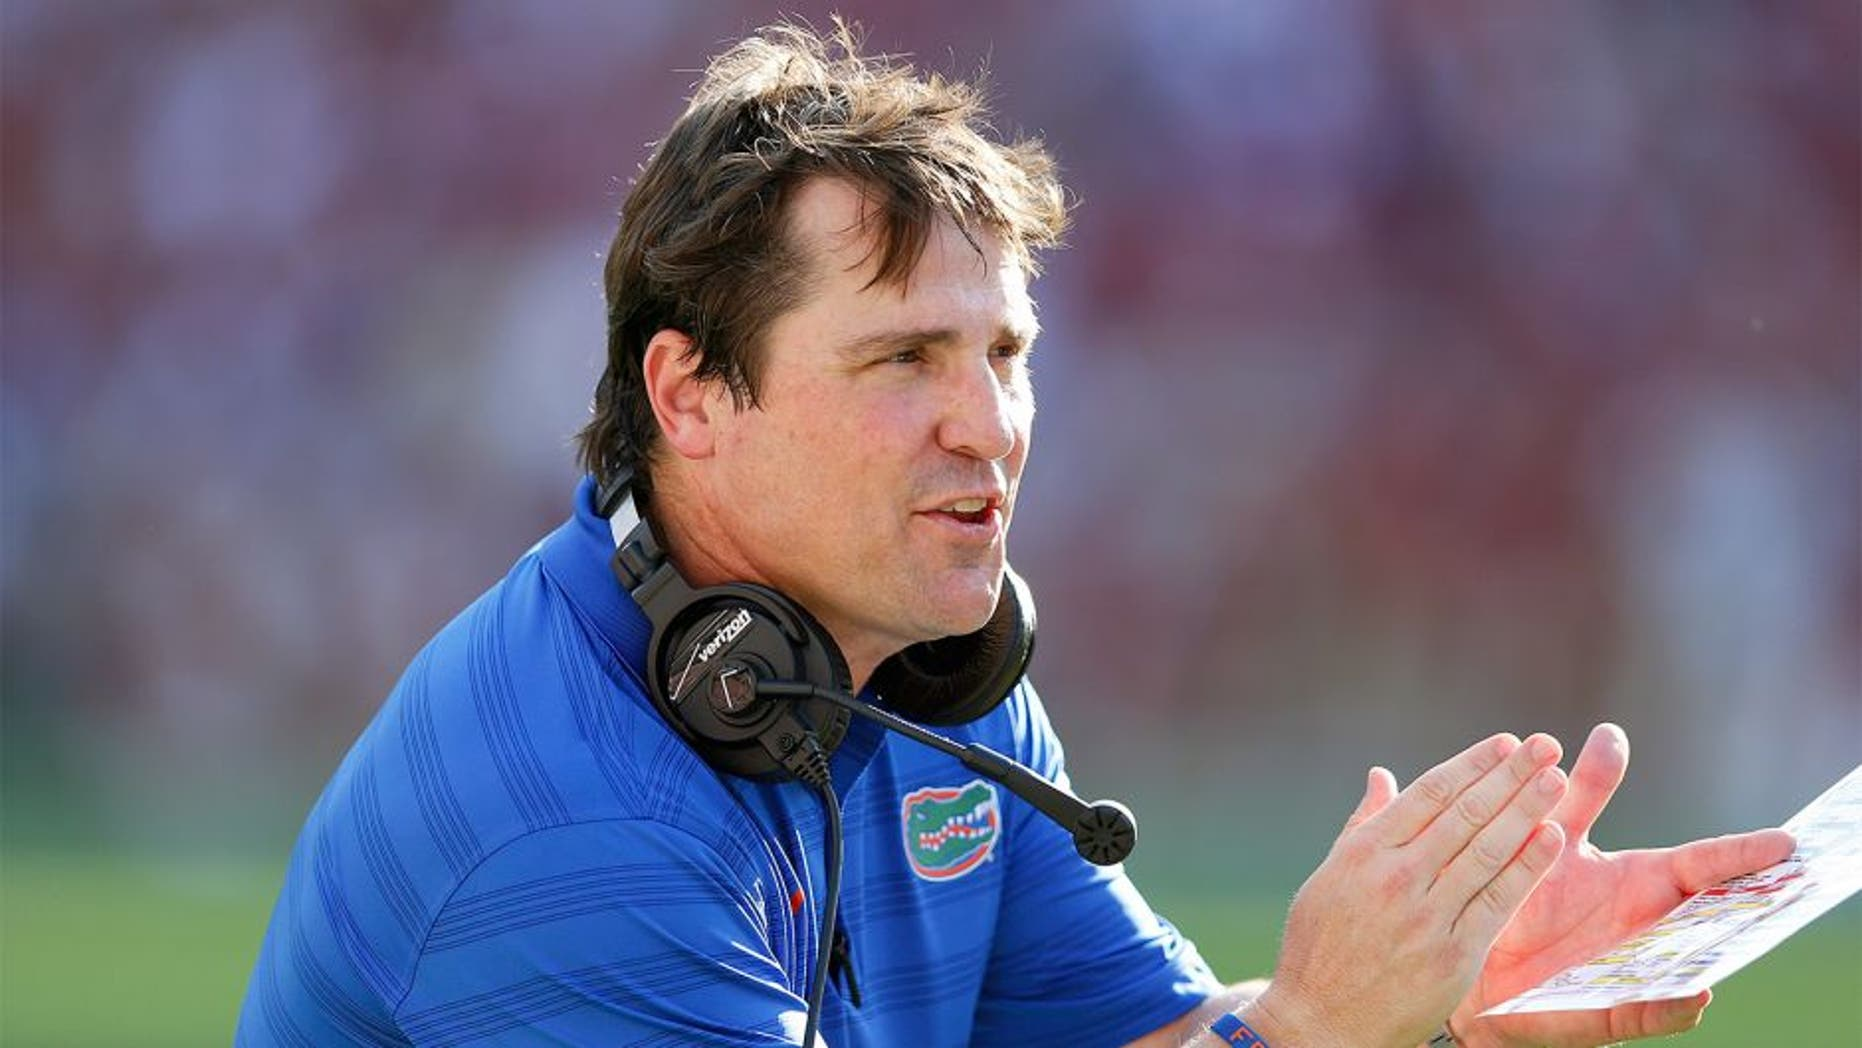 TUSCALOOSA, AL - SEPTEMBER 20: Head coach Will Muschamp of the Florida Gators looks on during the game against the Alabama Crimson Tide at Bryant-Denny Stadium on September 20, 2014 in Tuscaloosa, Alabama. Alabama defeated Florida 42-21. (Photo by Joe Robbins/Getty Images) *** Local Caption *** Will Muschamp